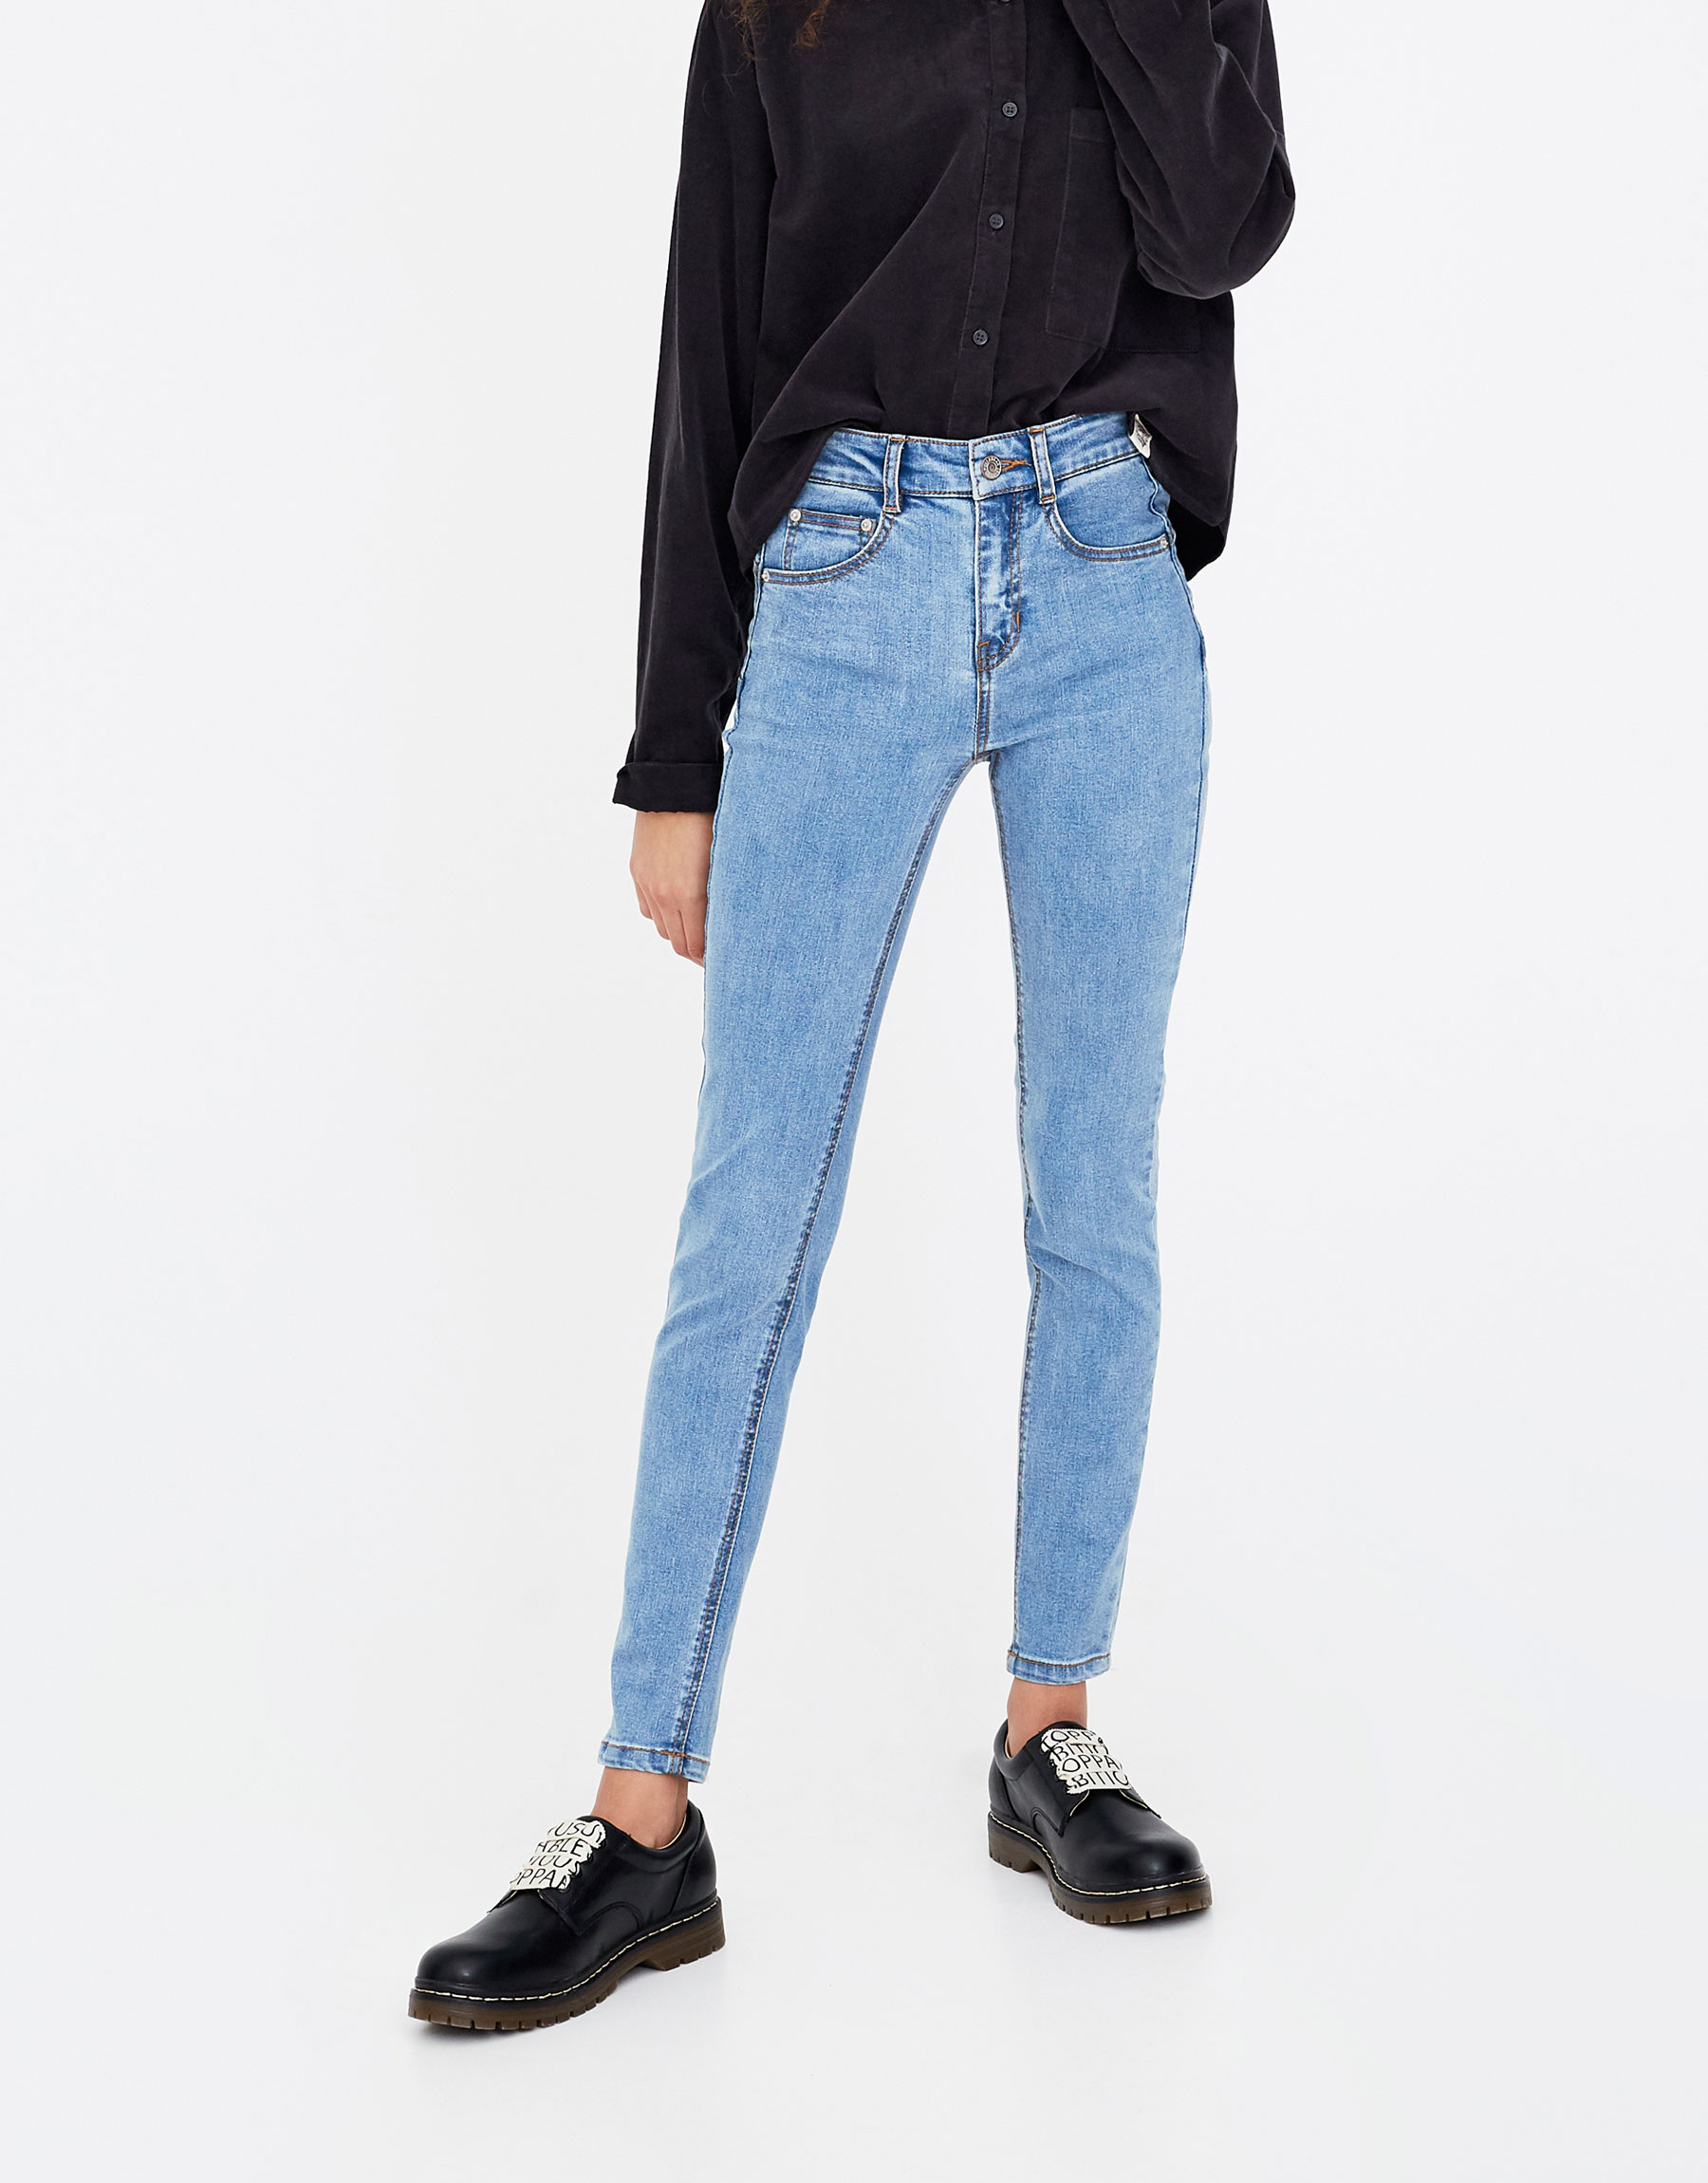 Brands amp; 99 At The Jeans Up £19 Pull Push Love Bear OHaxgnwP